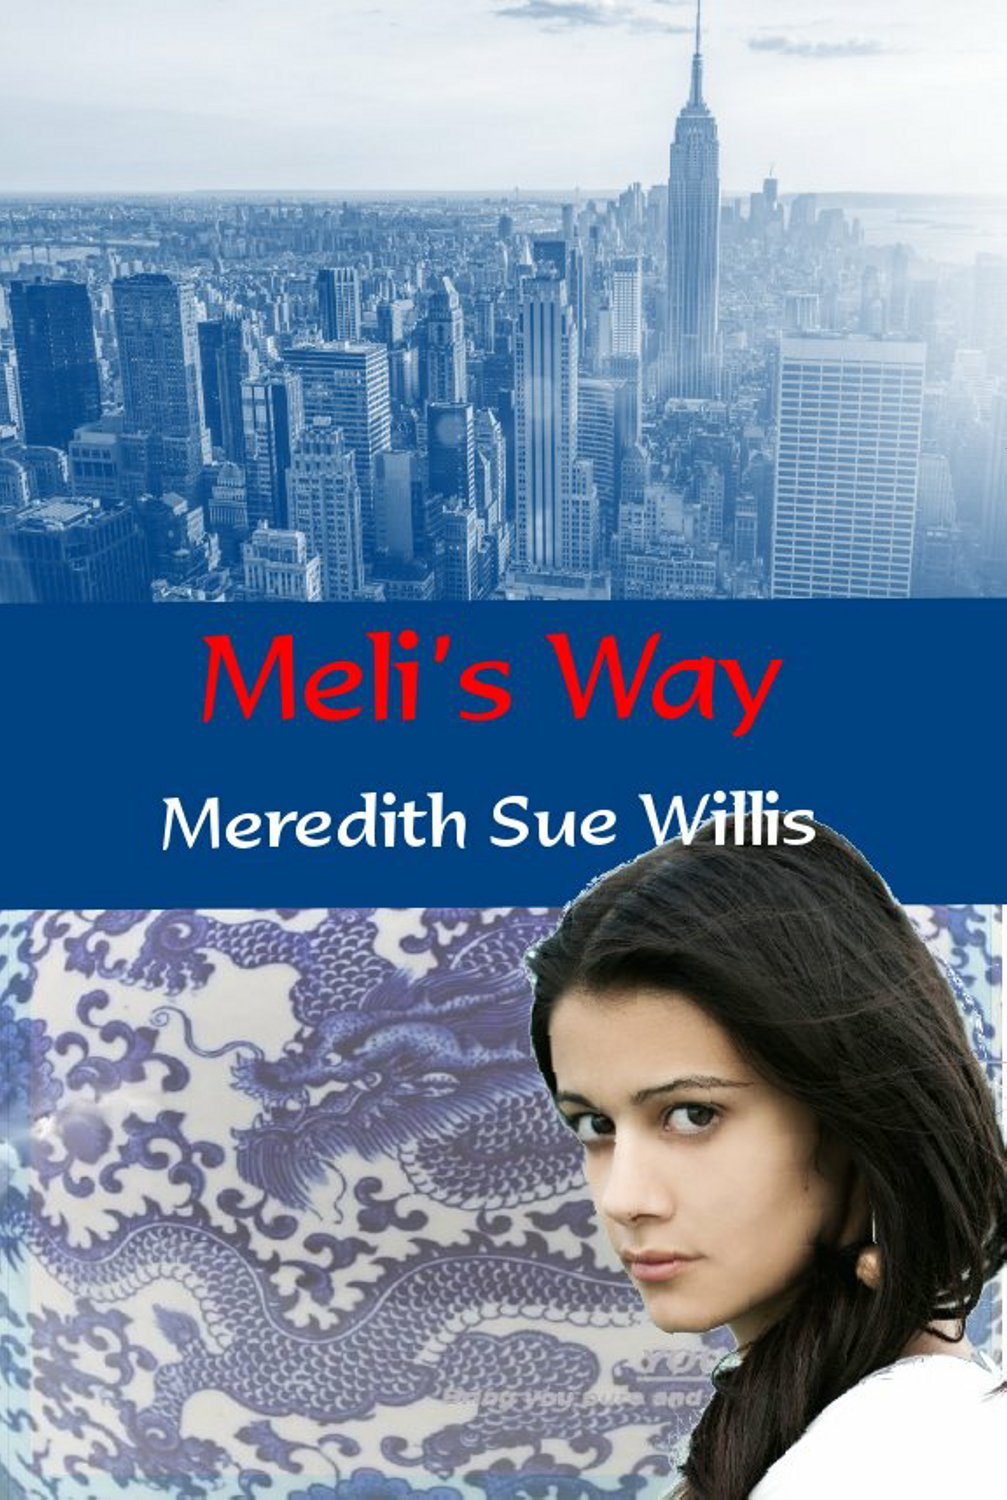 Meli's Way Book Cover Book Cover Image